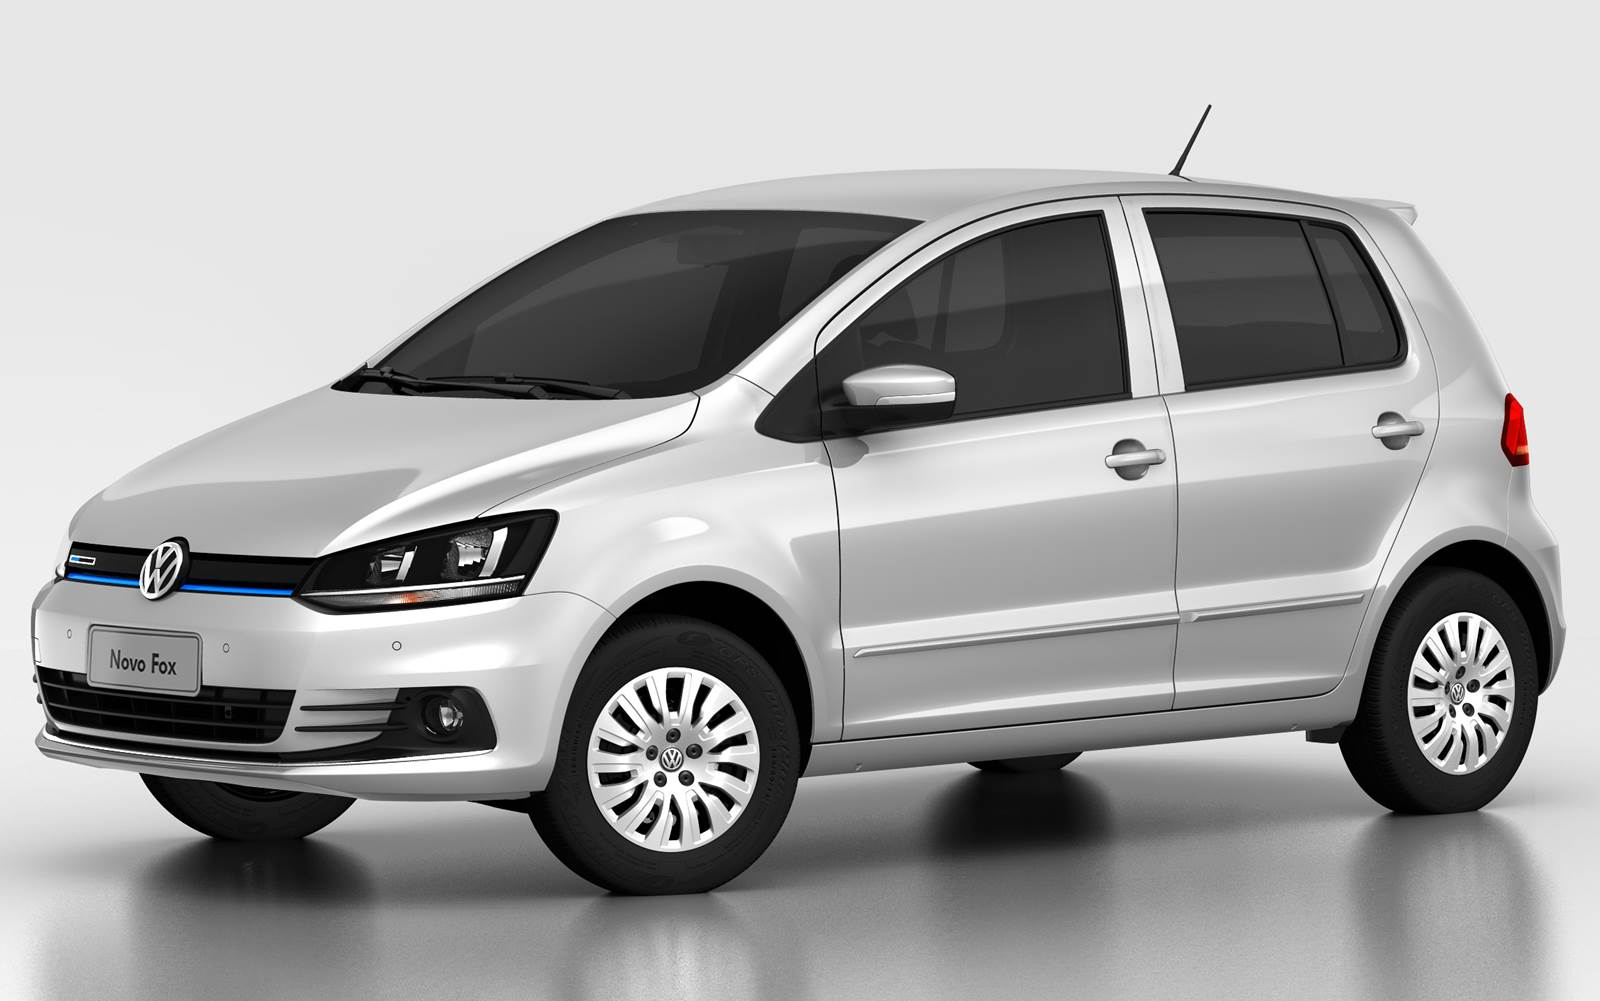 chevrolet onix x volkswagen fox comparativo de vers es car blog br. Black Bedroom Furniture Sets. Home Design Ideas